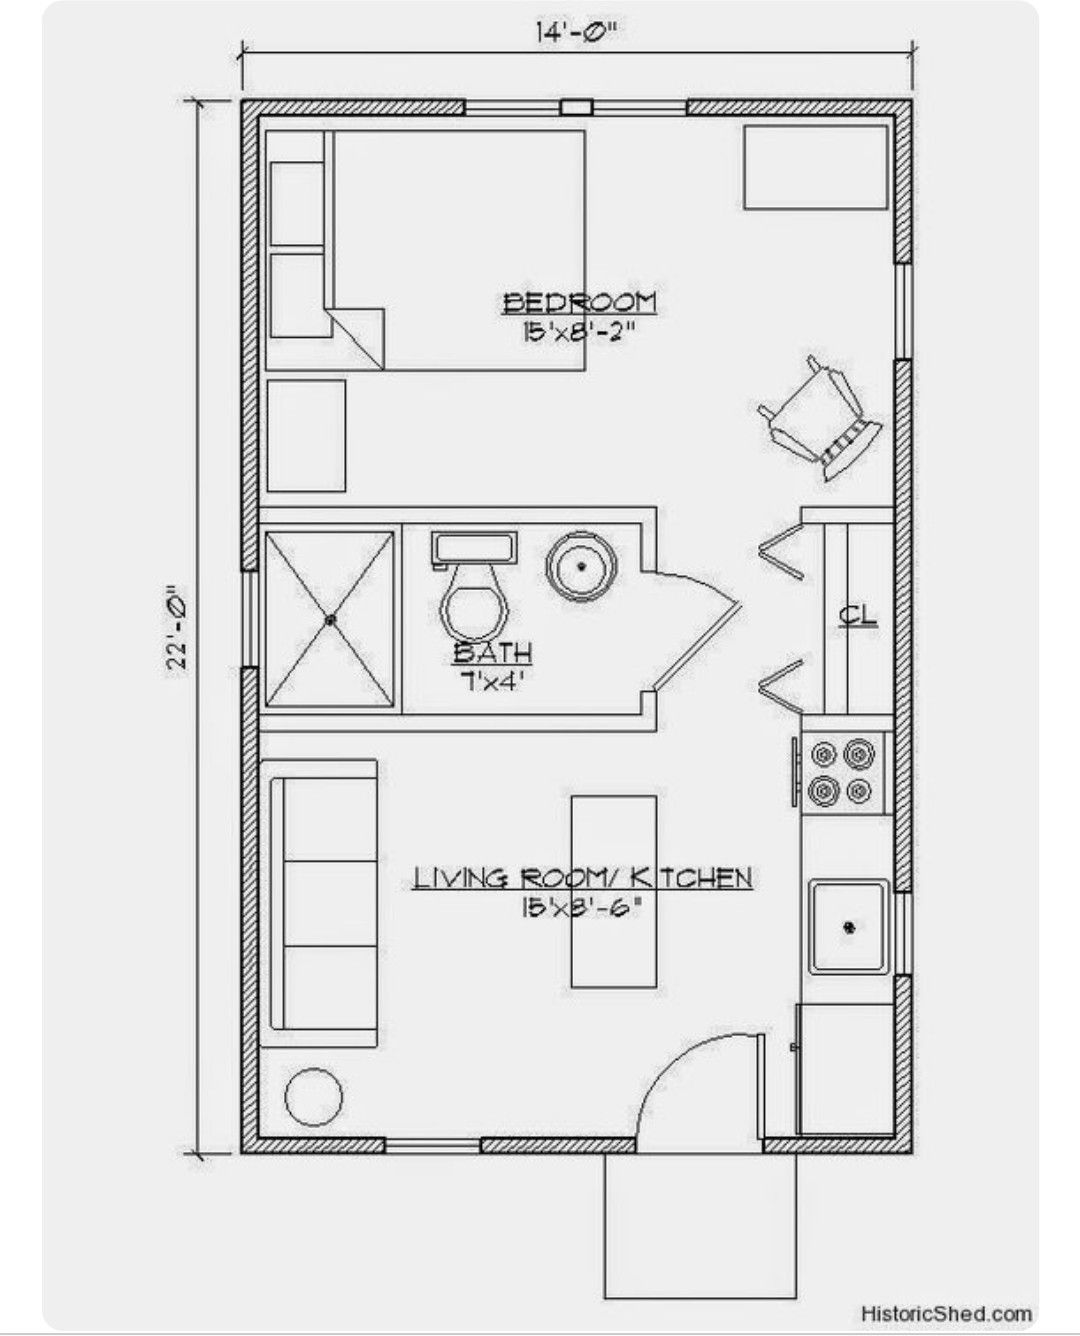 Small House 14x22 1 Bedroom Ecohouselayout Tiny House Floor Plans Tiny House Plans Bedroom House Plans